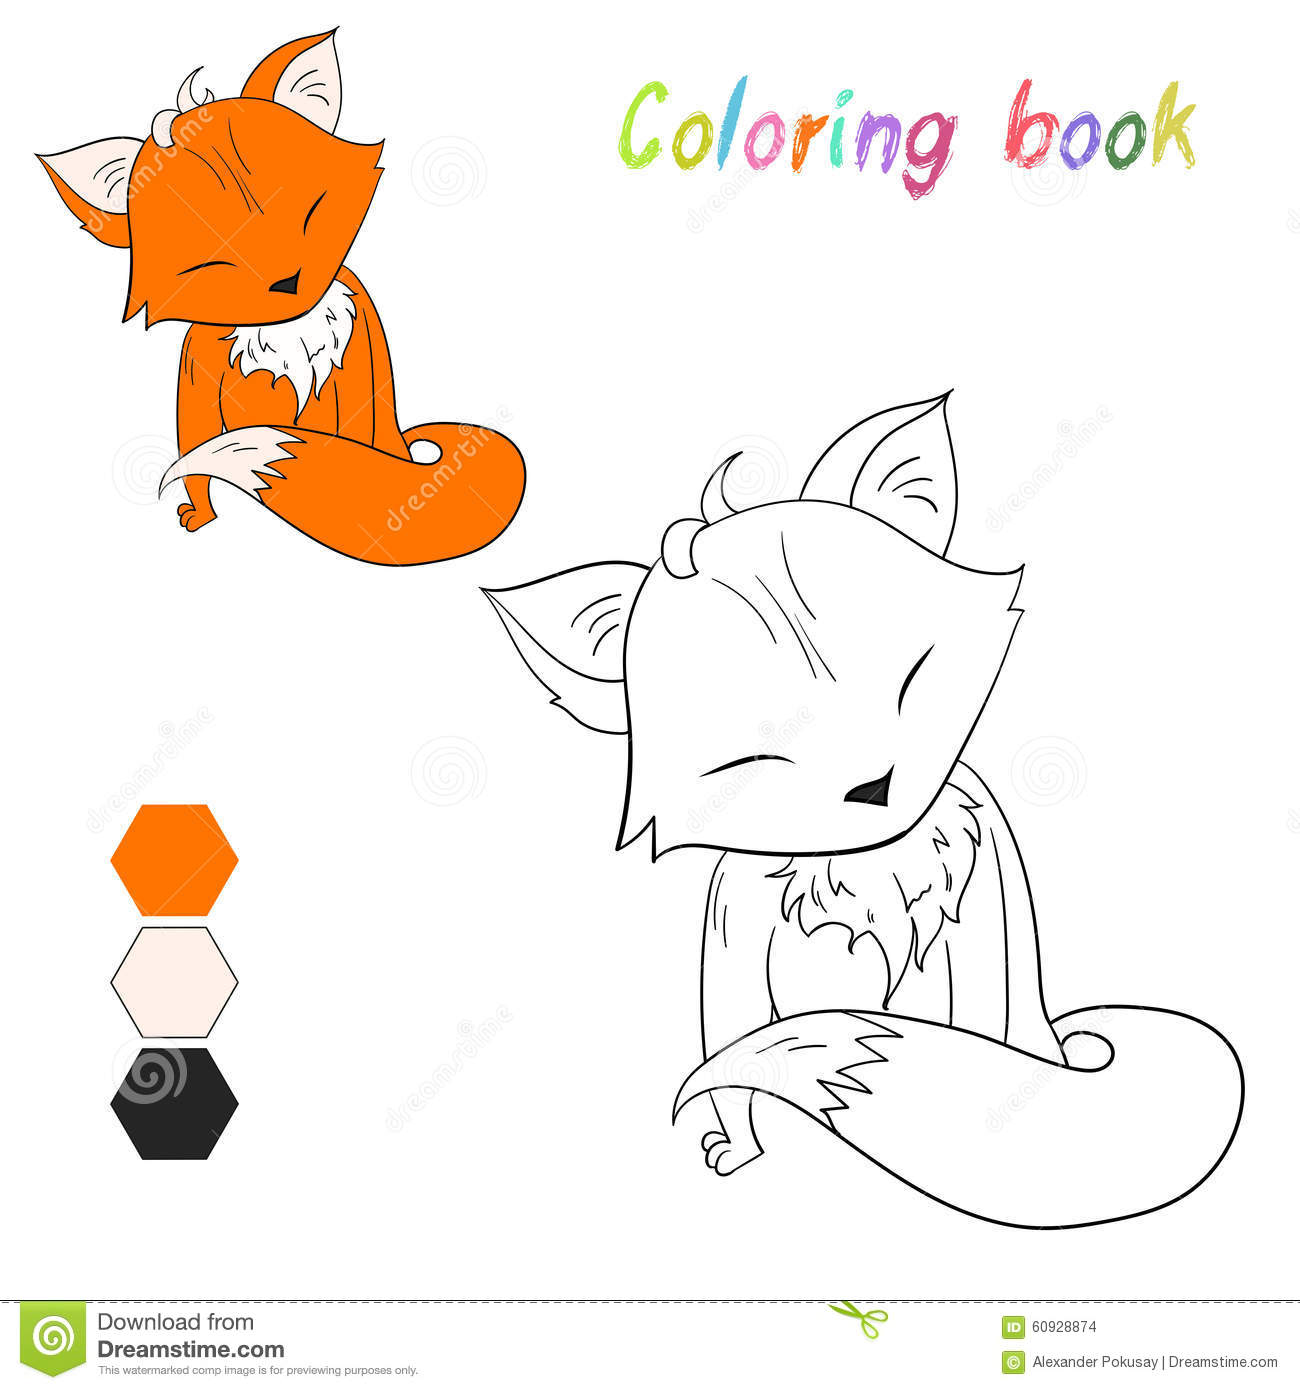 78 Game Doodle Coloring Book